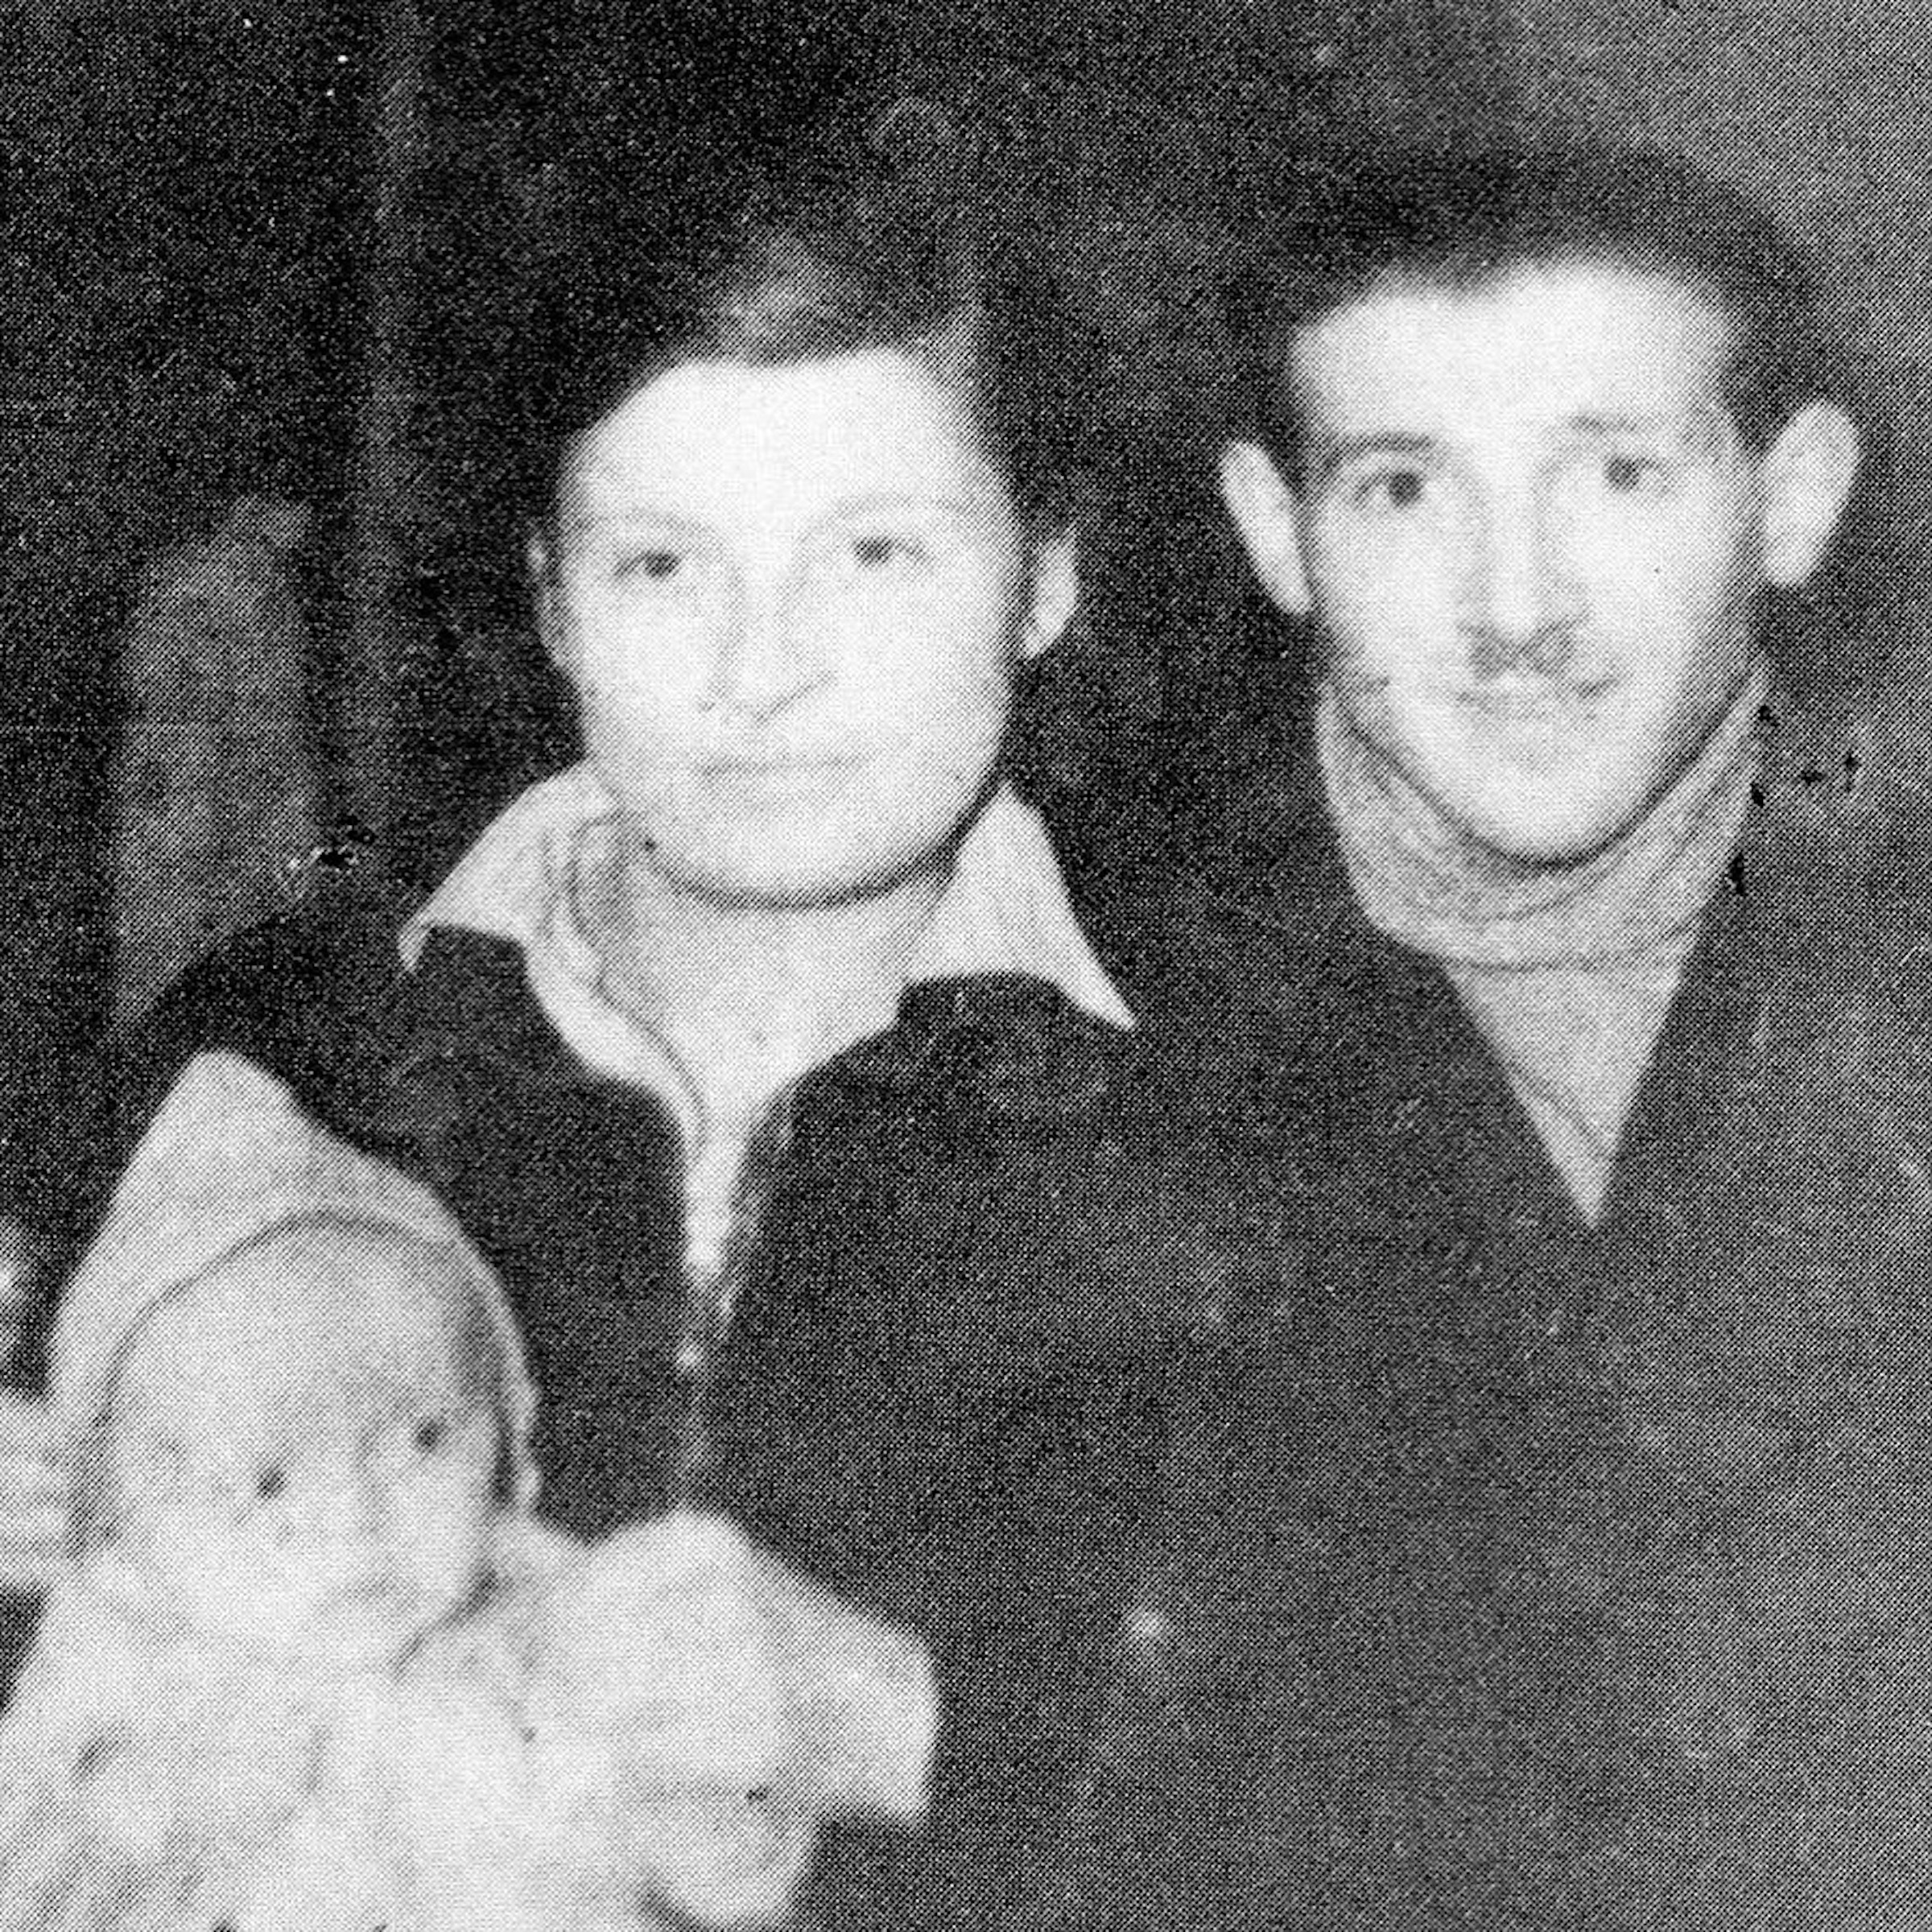 Selma Wynberg Engel, Chaim Engel, and their first child Emilje, conceived in hiding after their escape from the Nazi Death Camp Sobibor. Emilje died shortly after he was born, during their difficult journey to freedom.